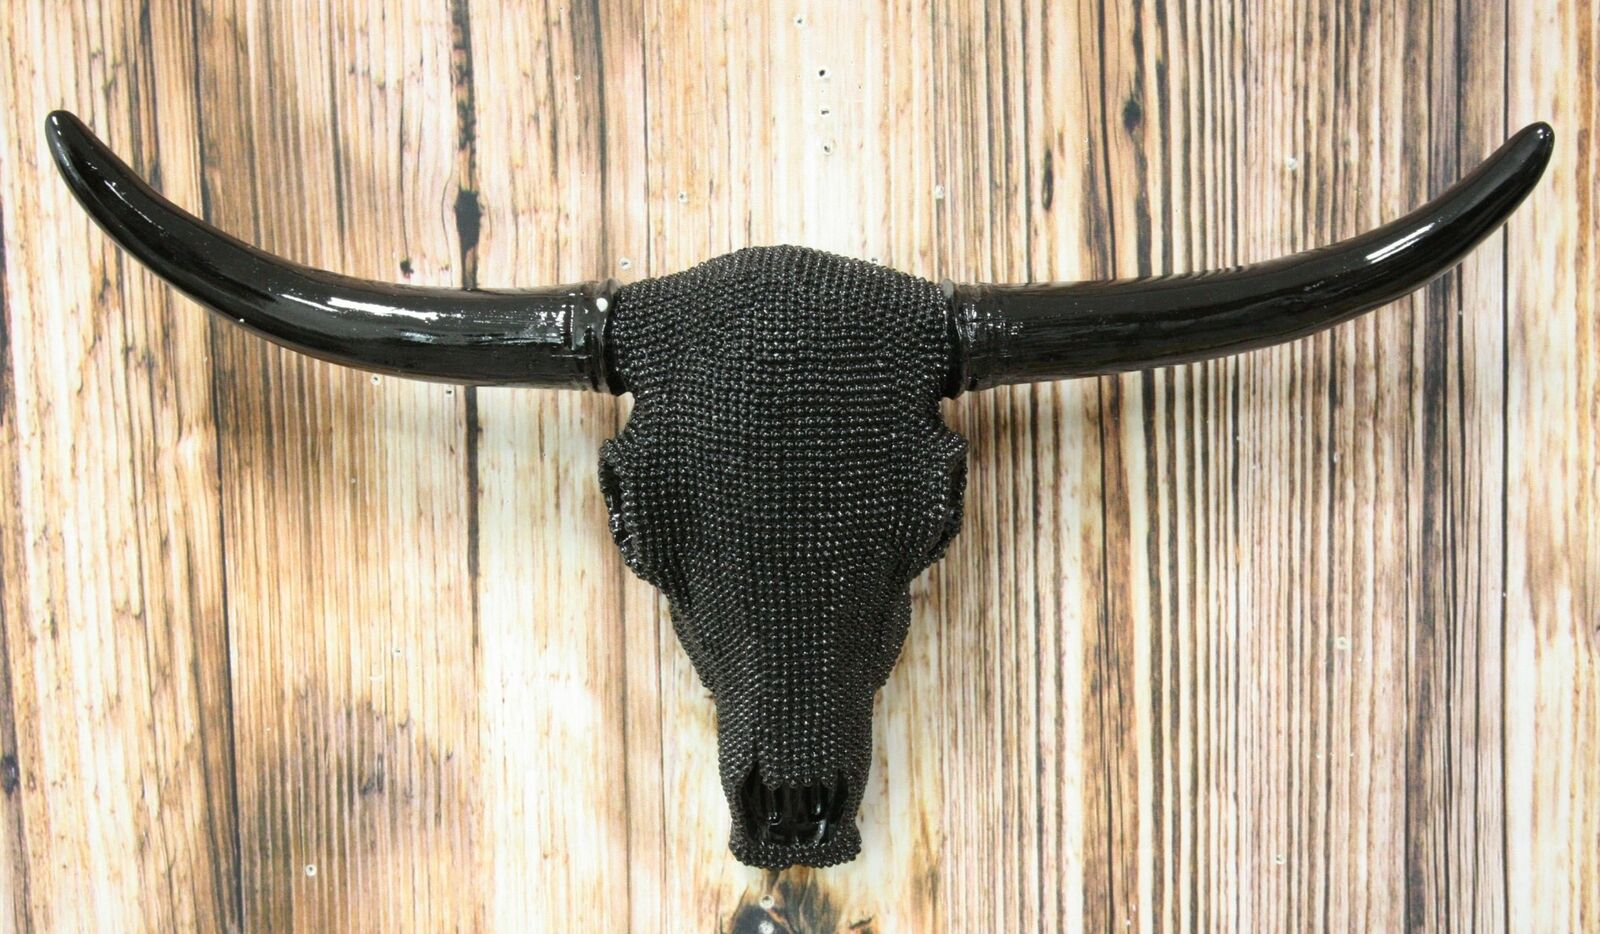 Resin Paisley Longhorn Skull Wall Mounted Cow Head Decor Hanging Antler Horn Art